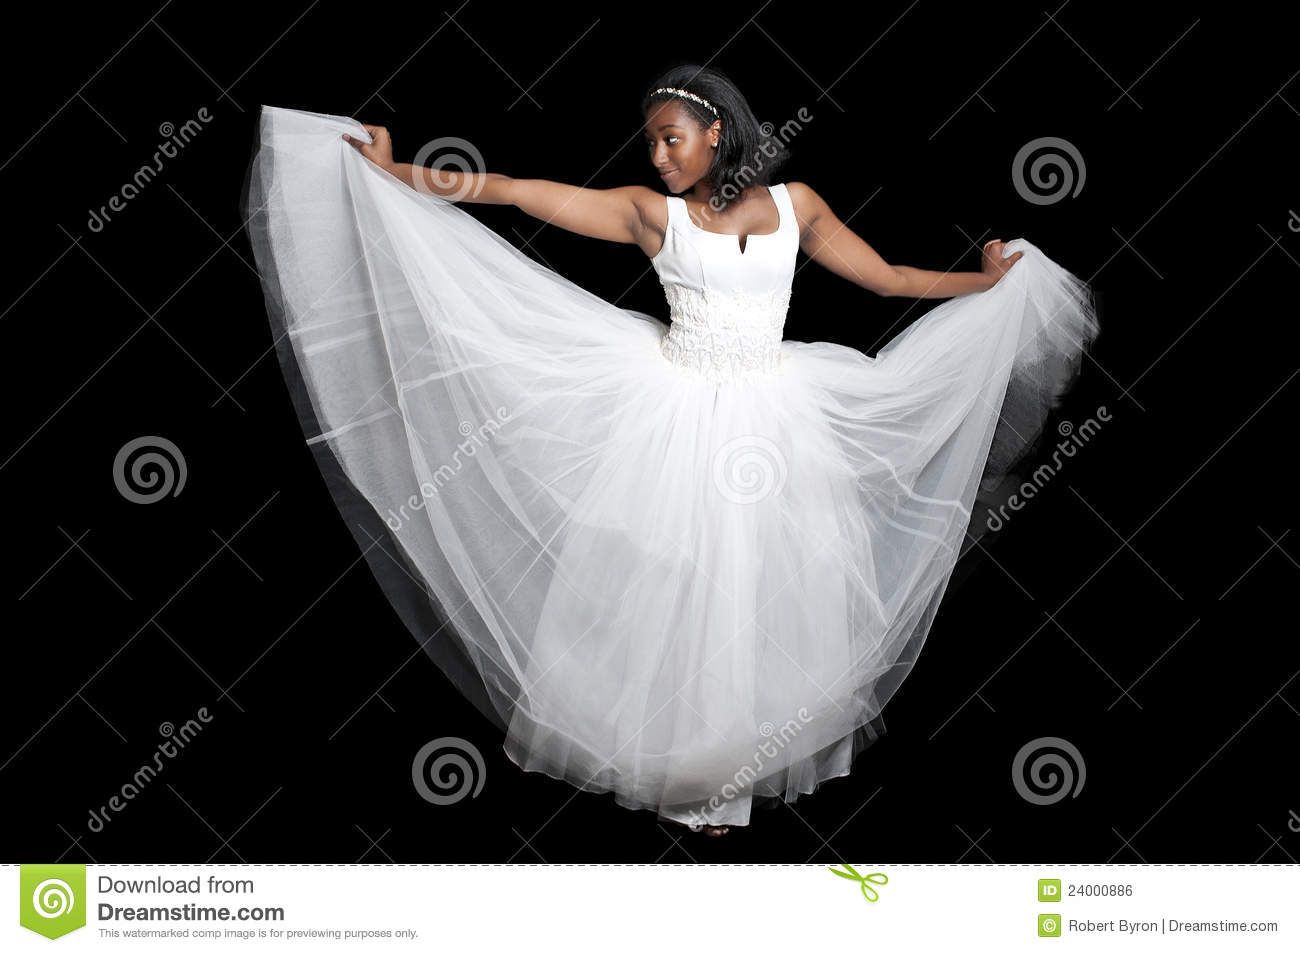 Creative Black Woman In Wedding Dress Stock Image - Image Of Beauty American 24000789